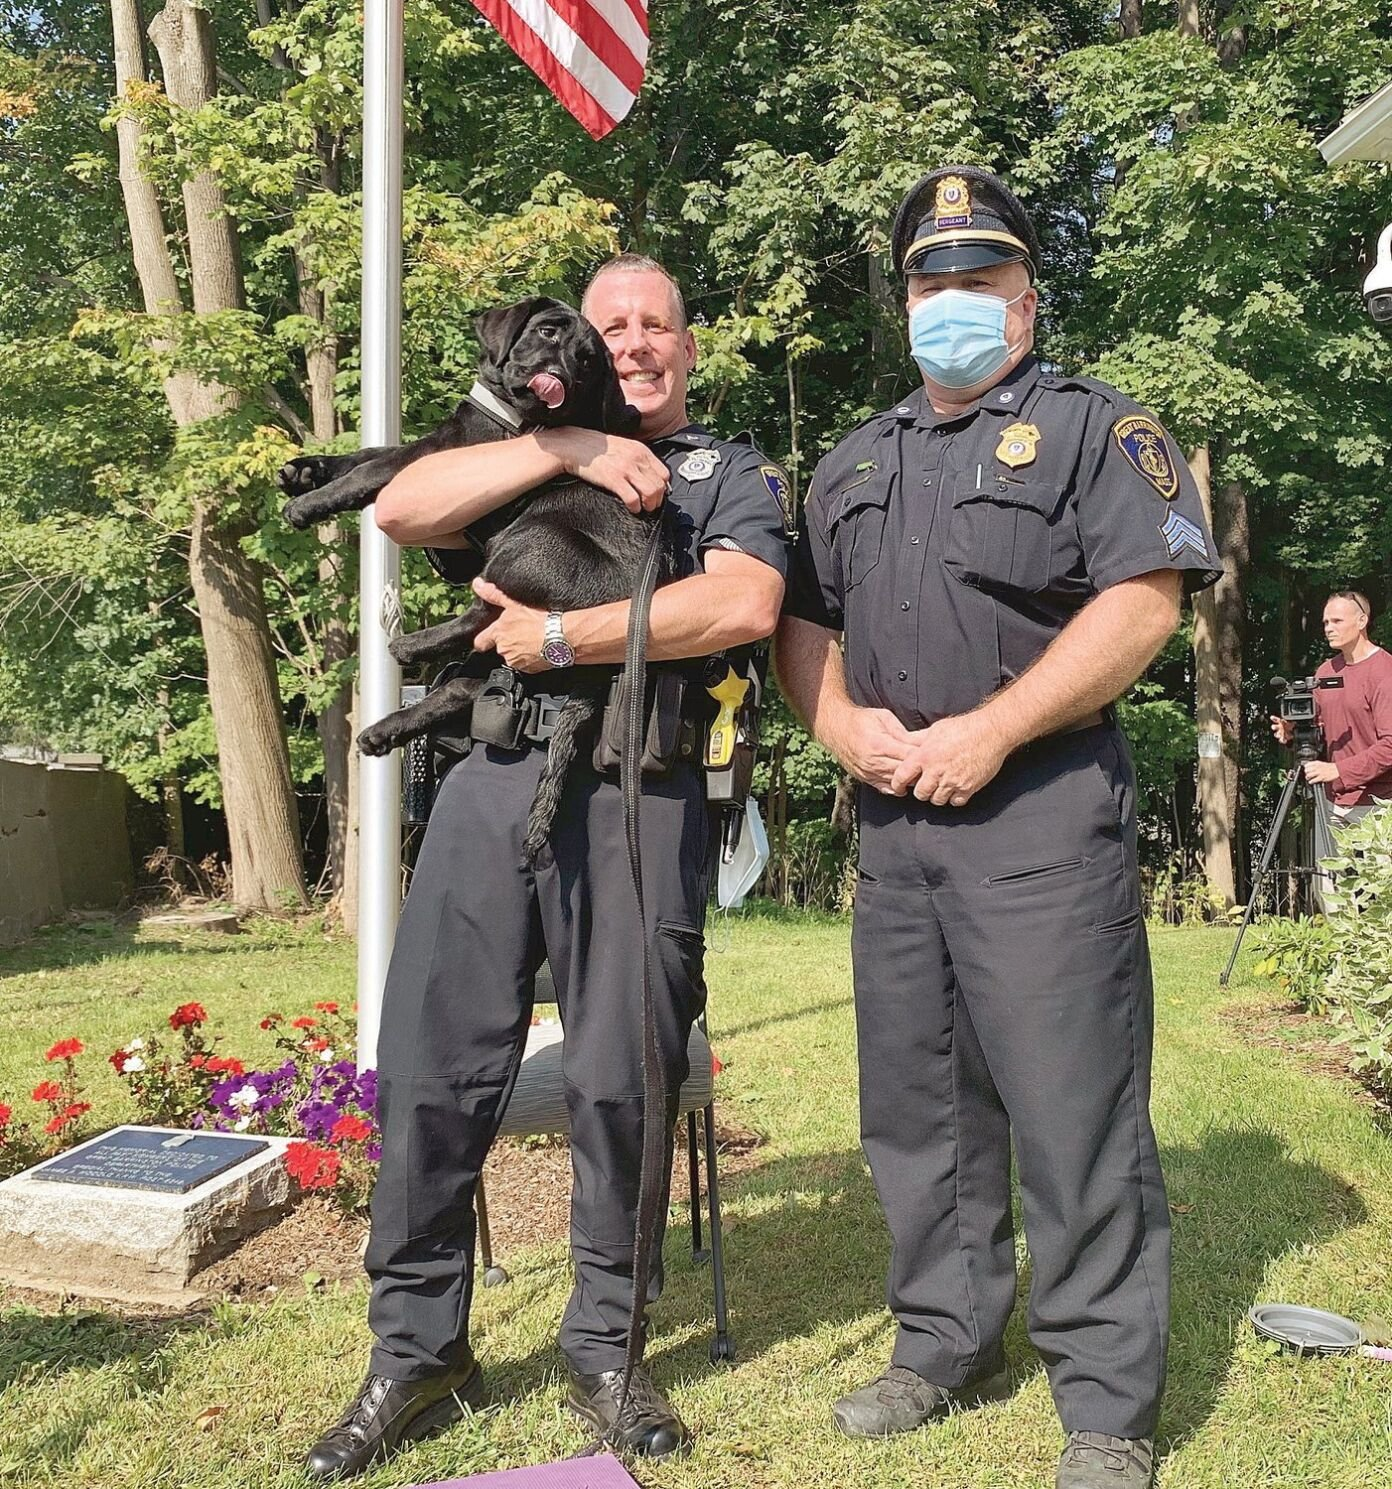 In Great Barrington, Beko is on the beat to combat stress